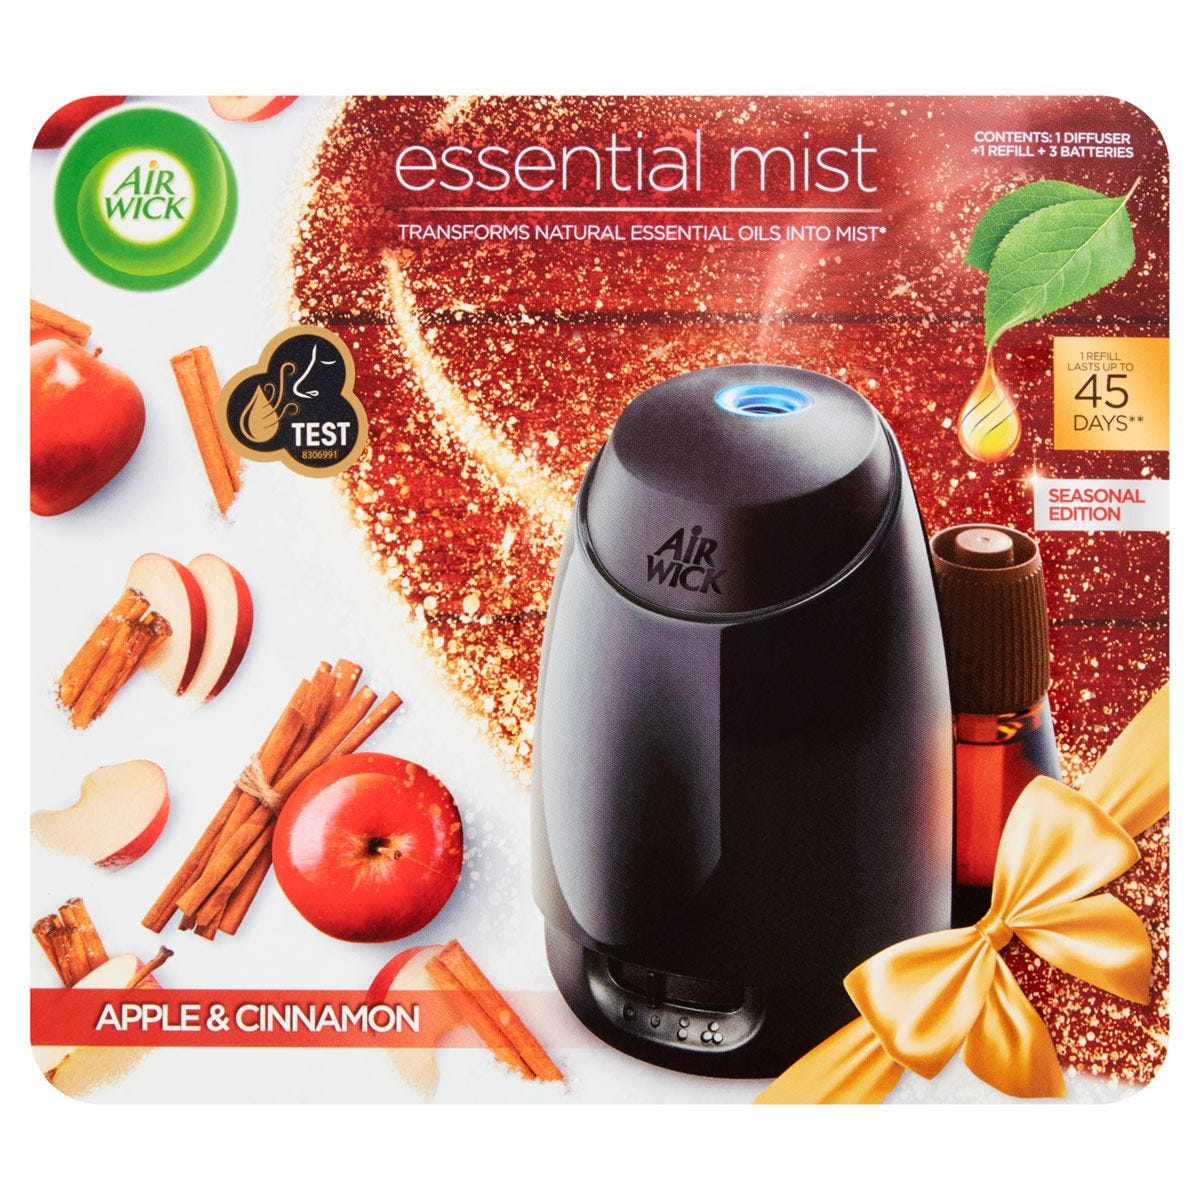 Air Wick Essential Mist Apple and Cinnamon Diffuser